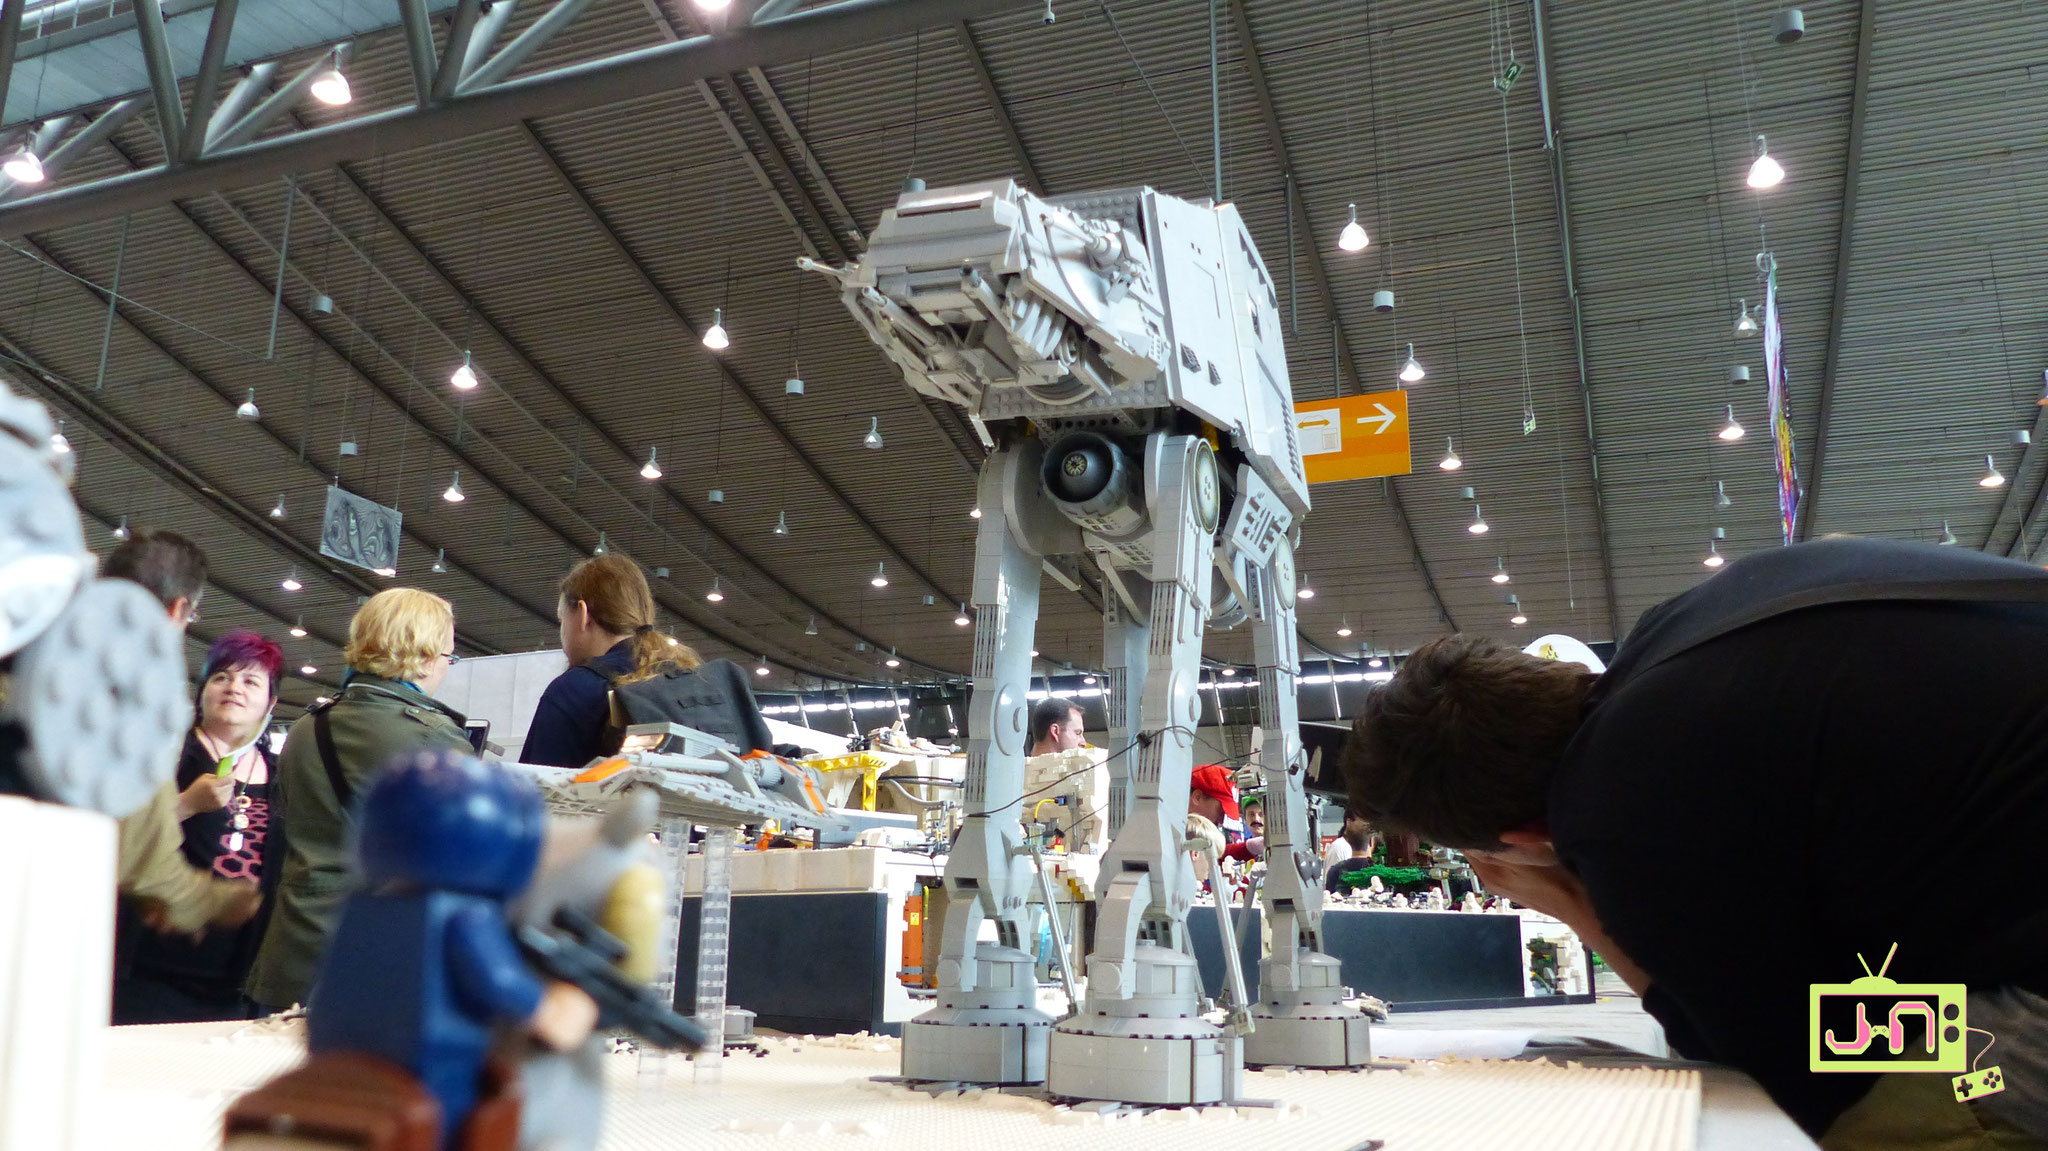 AT-AT, die coolsten Kampfmaschinen aus Star Wars